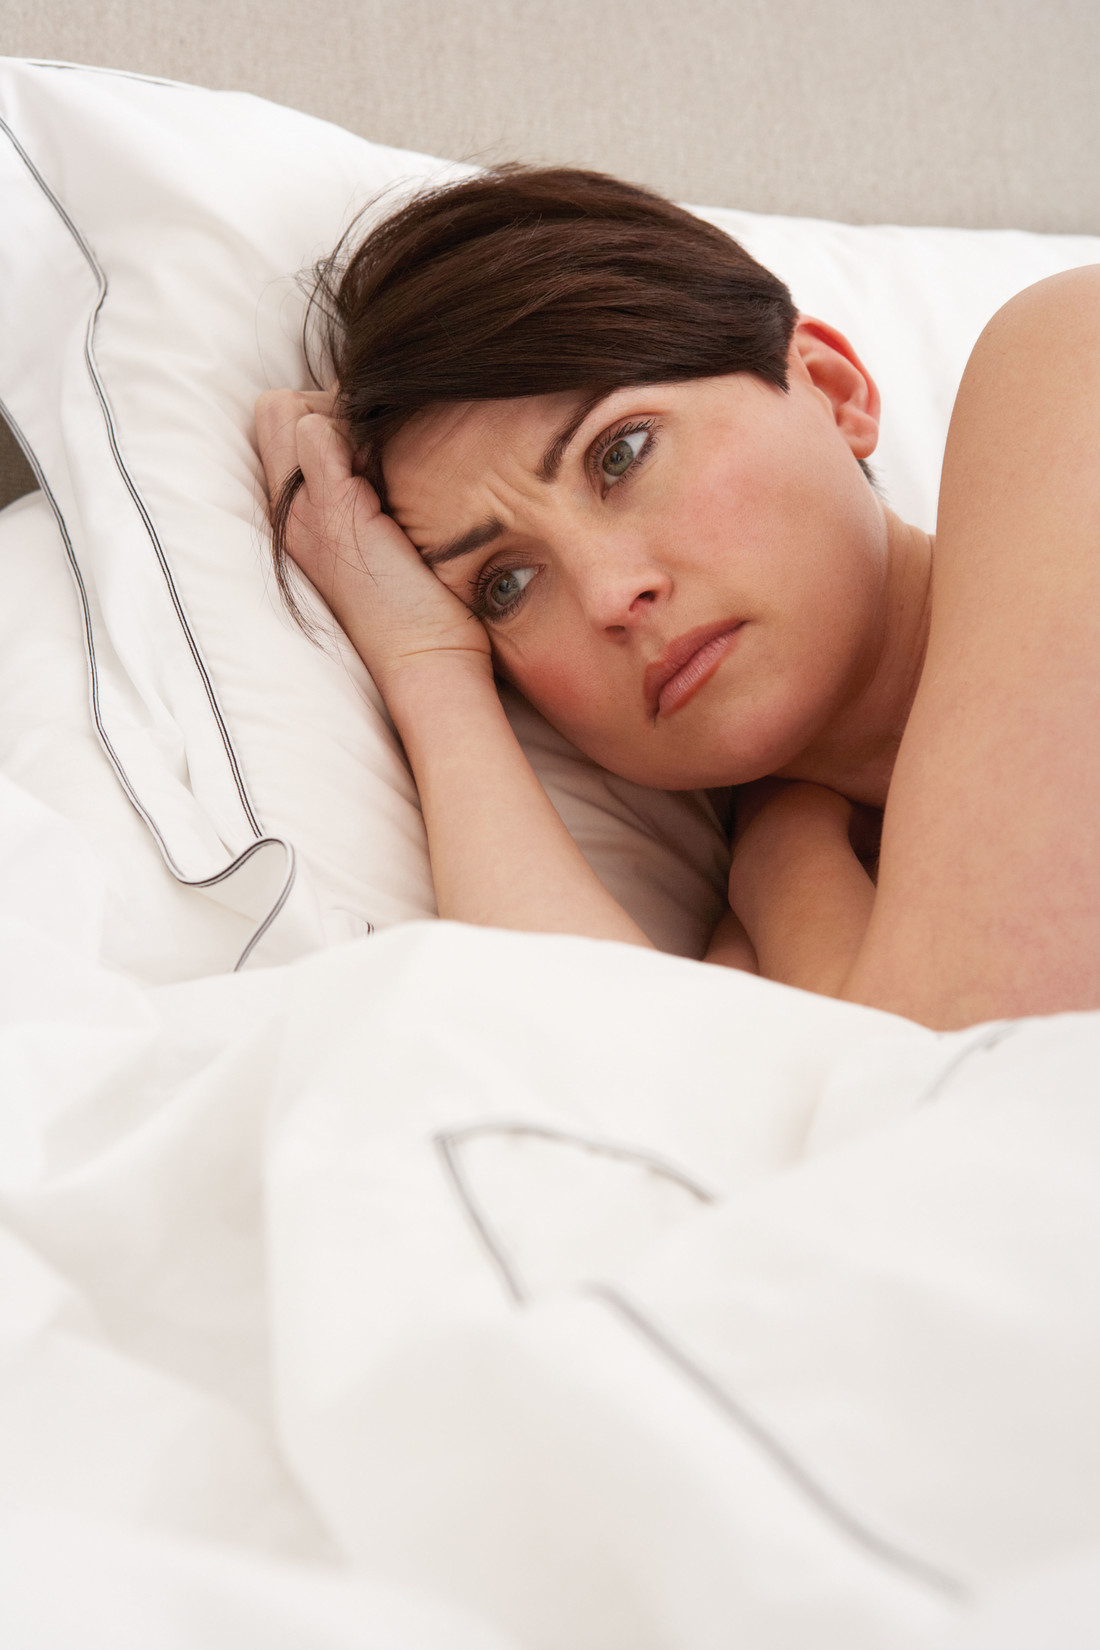 What causes insomnia, how is it treated, and can it lead to other problems?